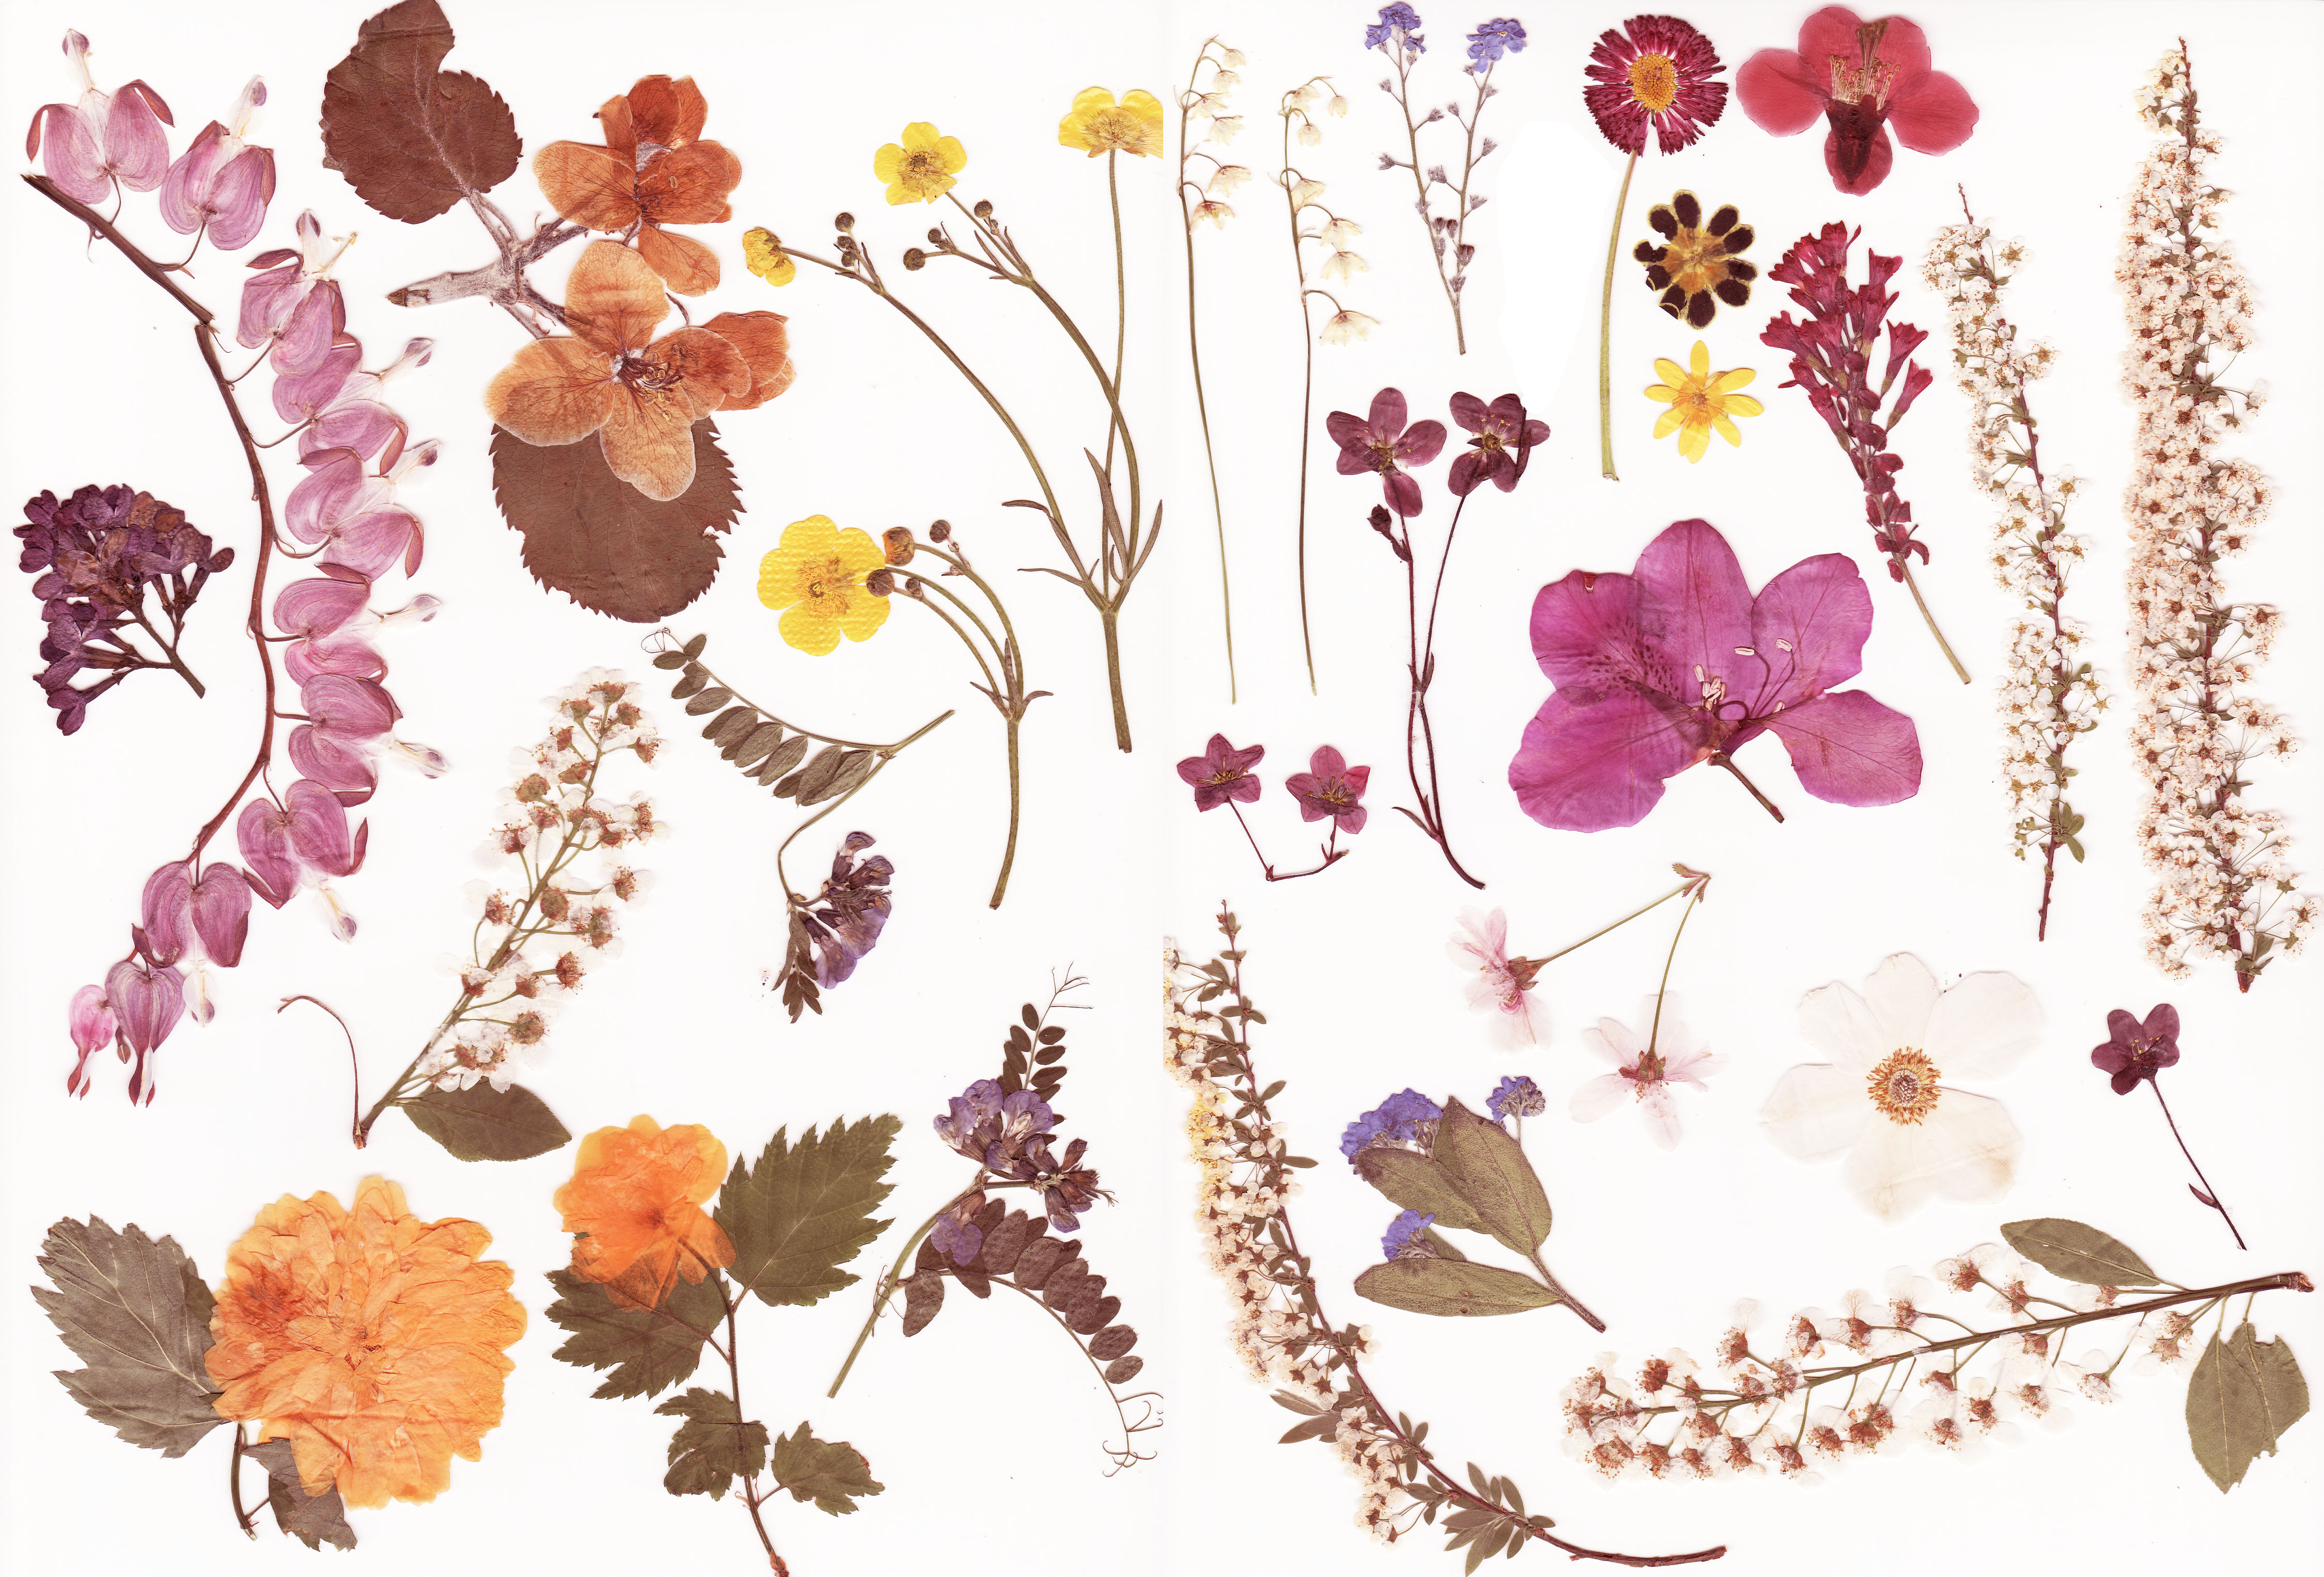 Pressed_flowers_stock_by_Rocktuete.jpg (4500×3054) | Flower and Plant ...